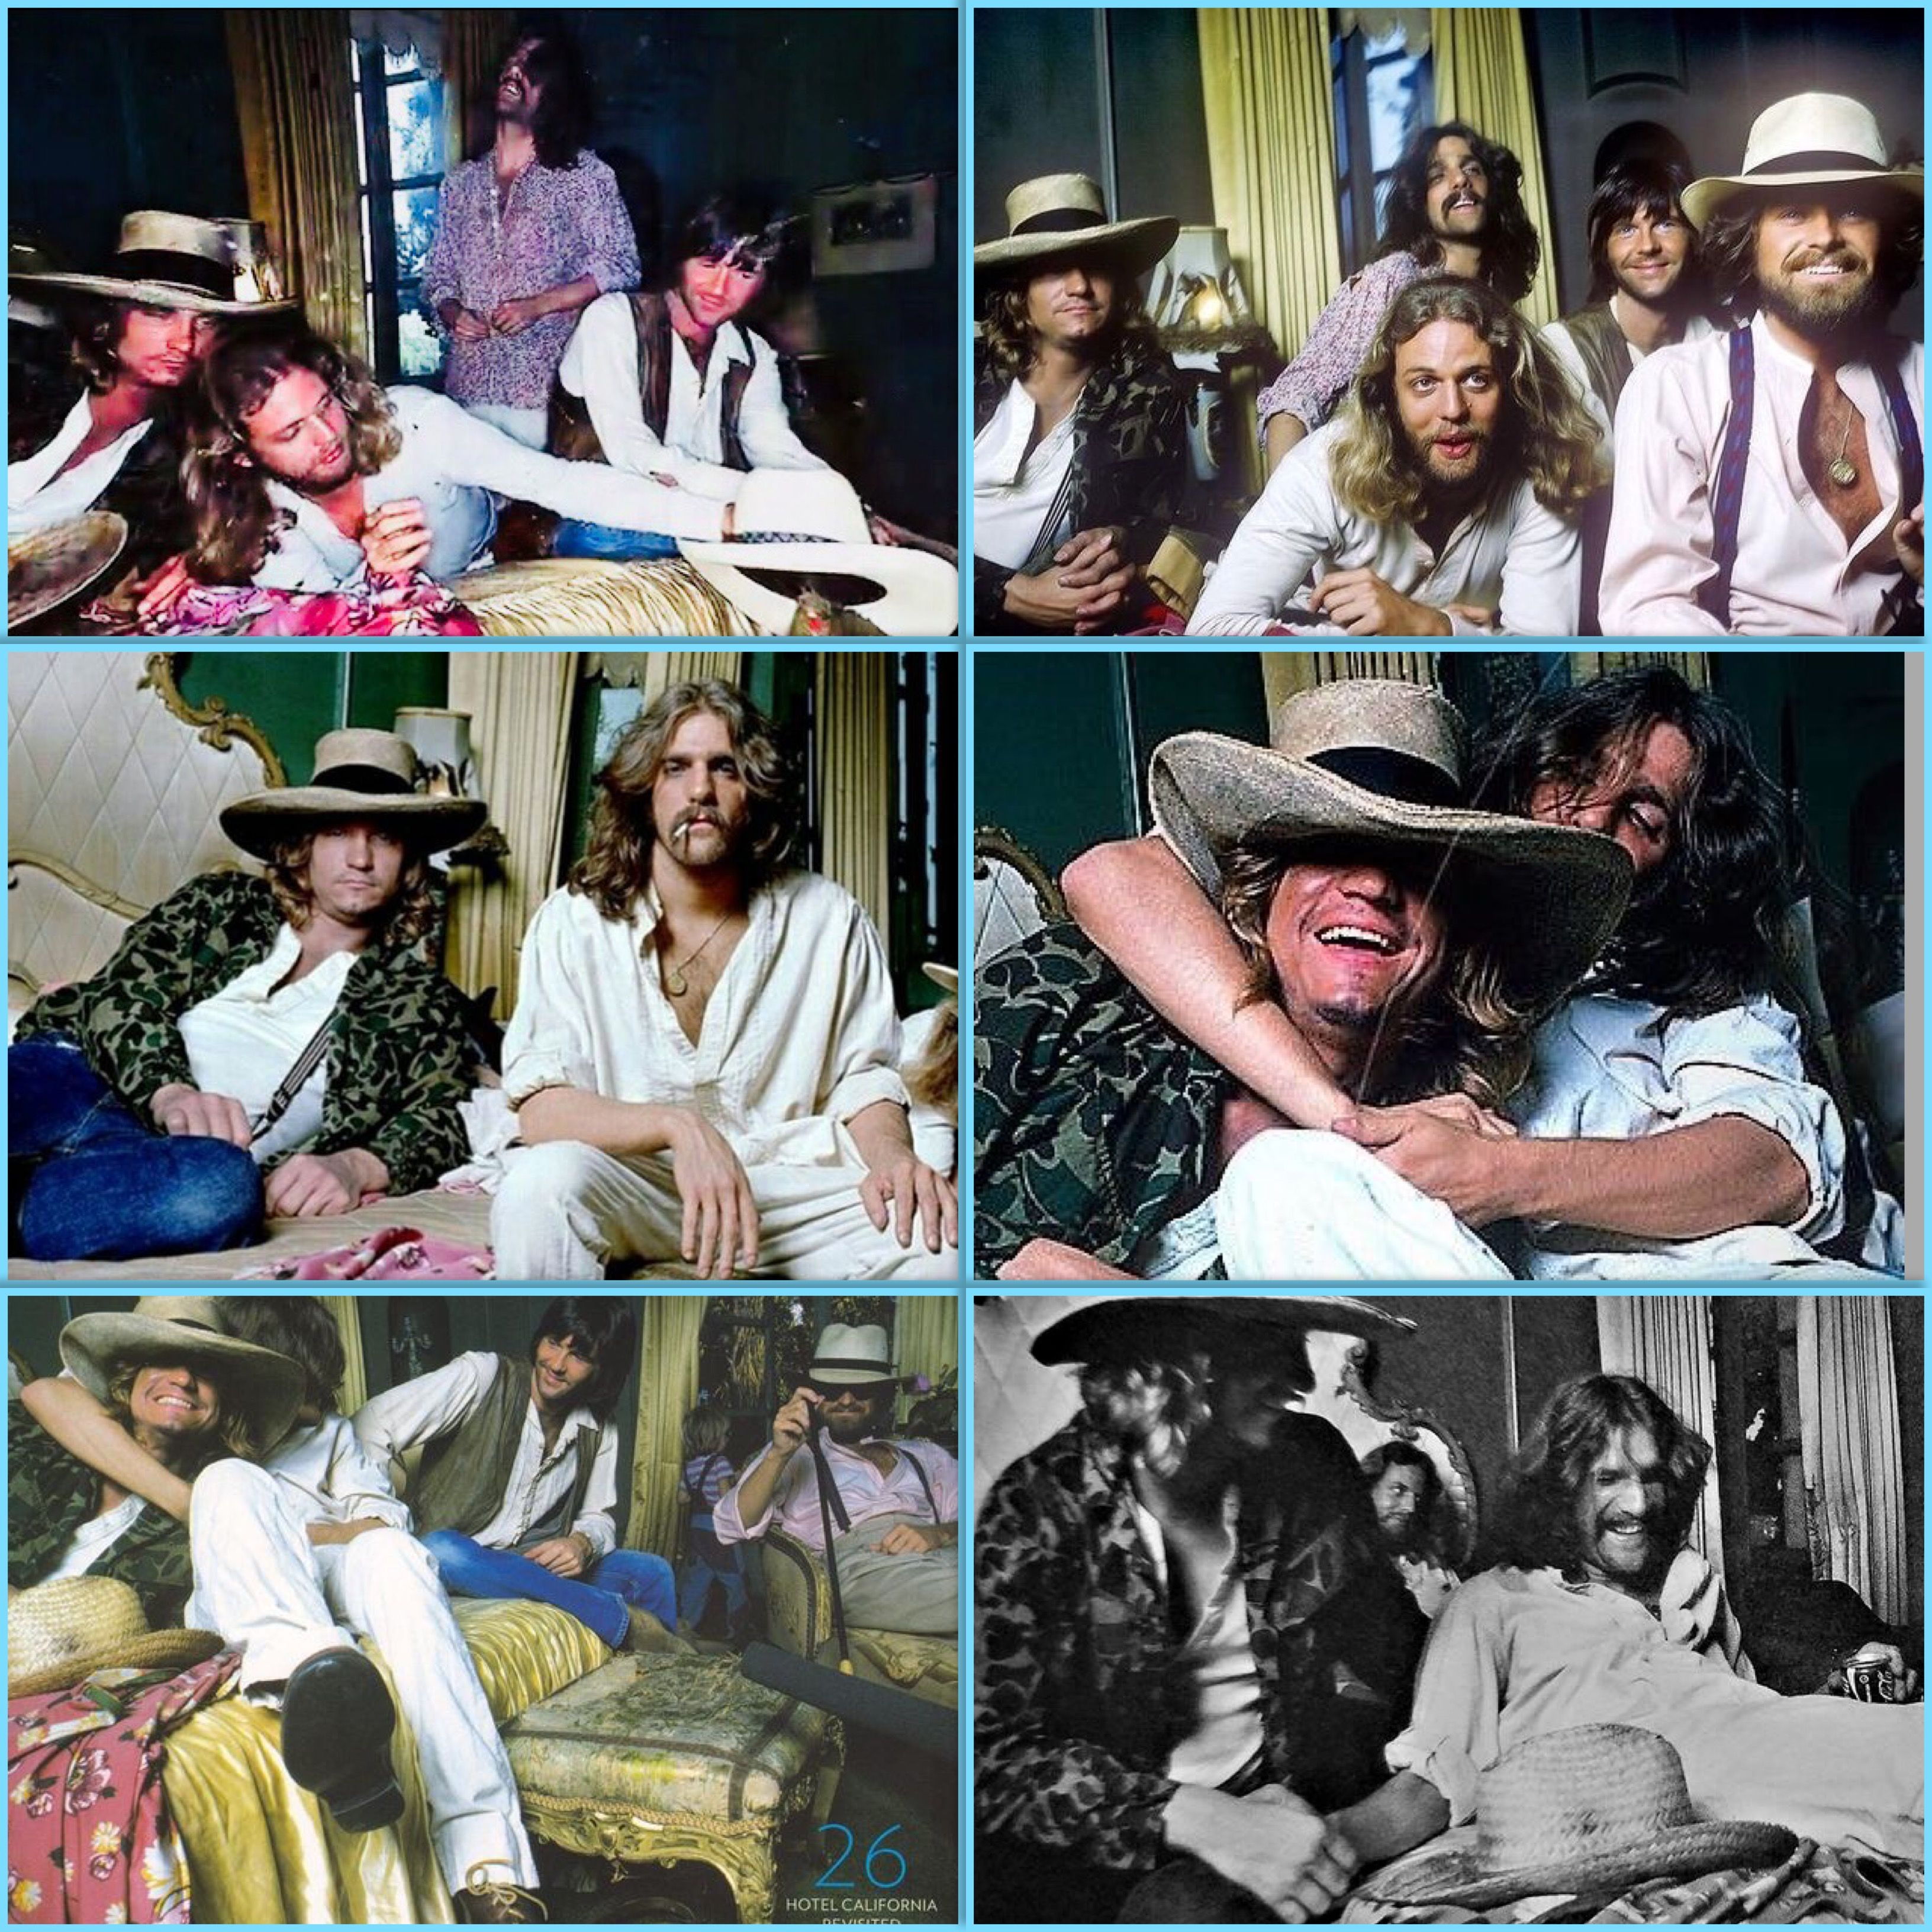 Eagles Hotel California Photo Shoot 1976 With Images Eagles